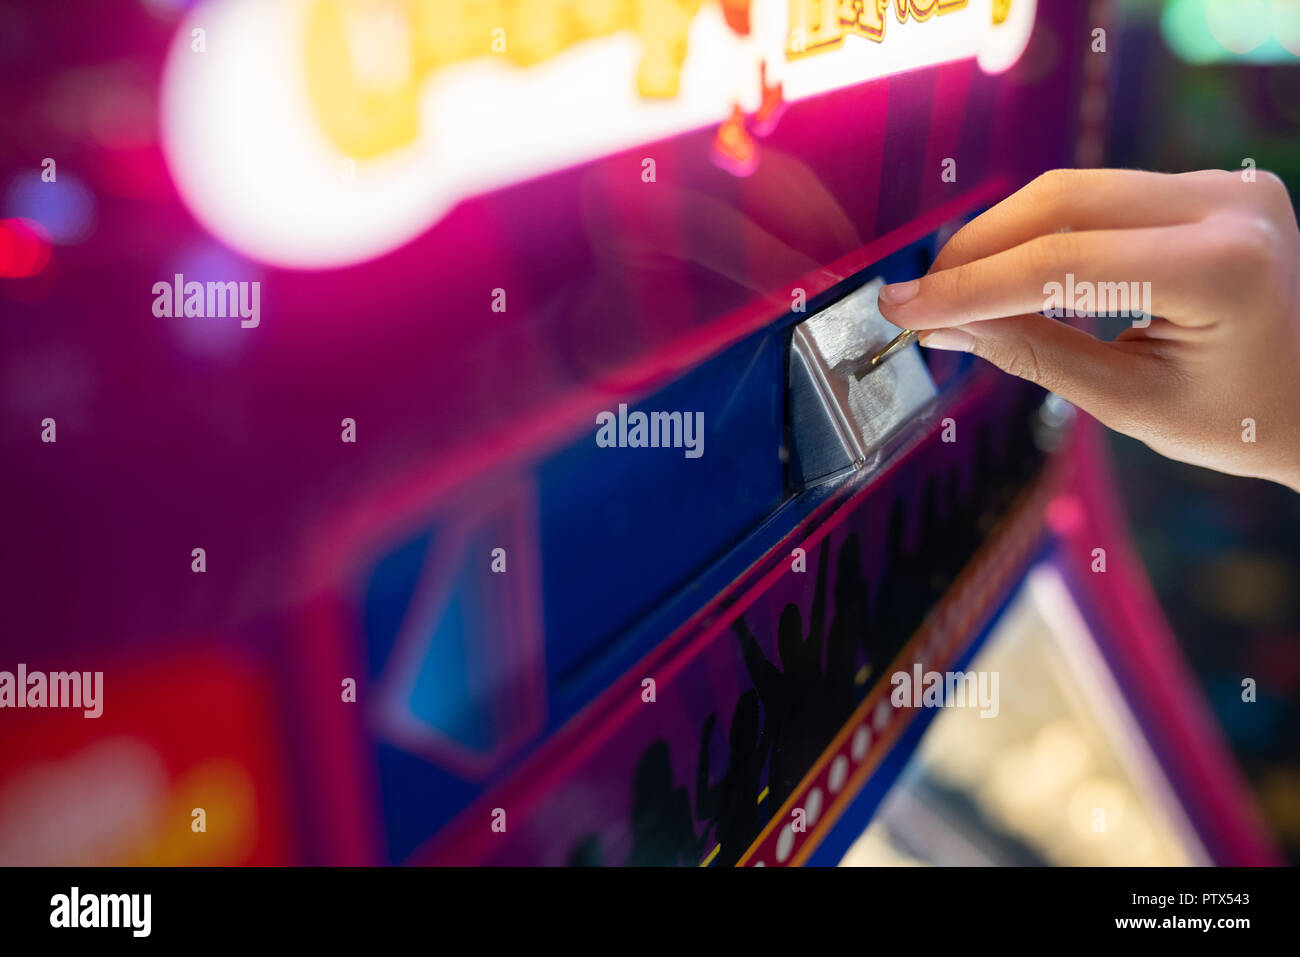 Child hand inserting a coin into the amusement park arcade machine. - Stock Image